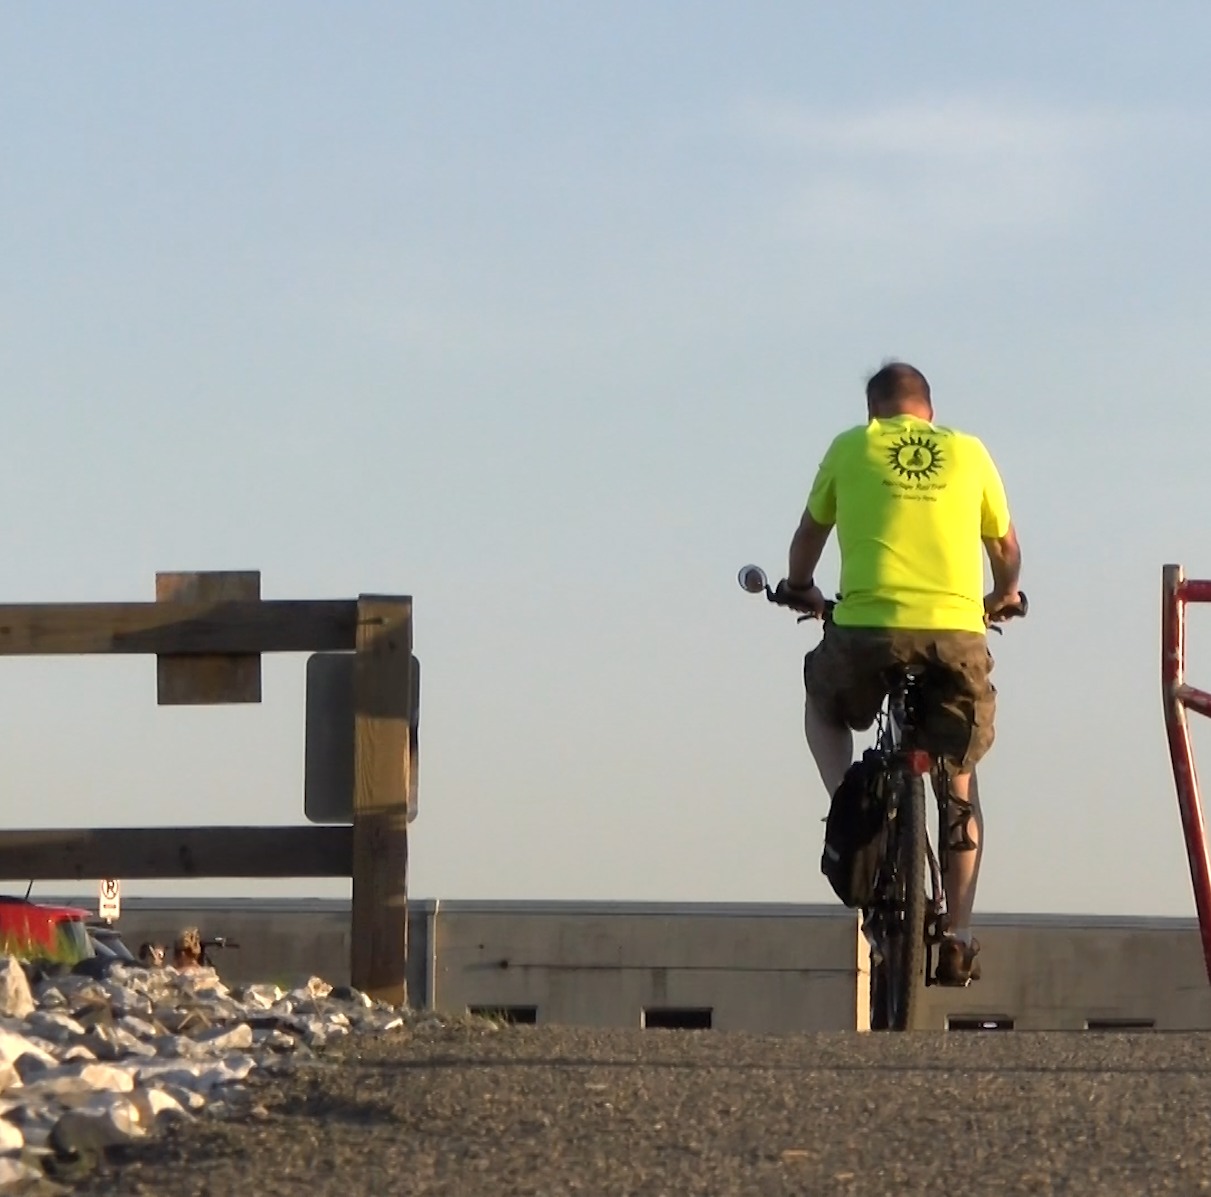 'People think we're having too much fun': Why a York e-bike rider feels targeted by the law